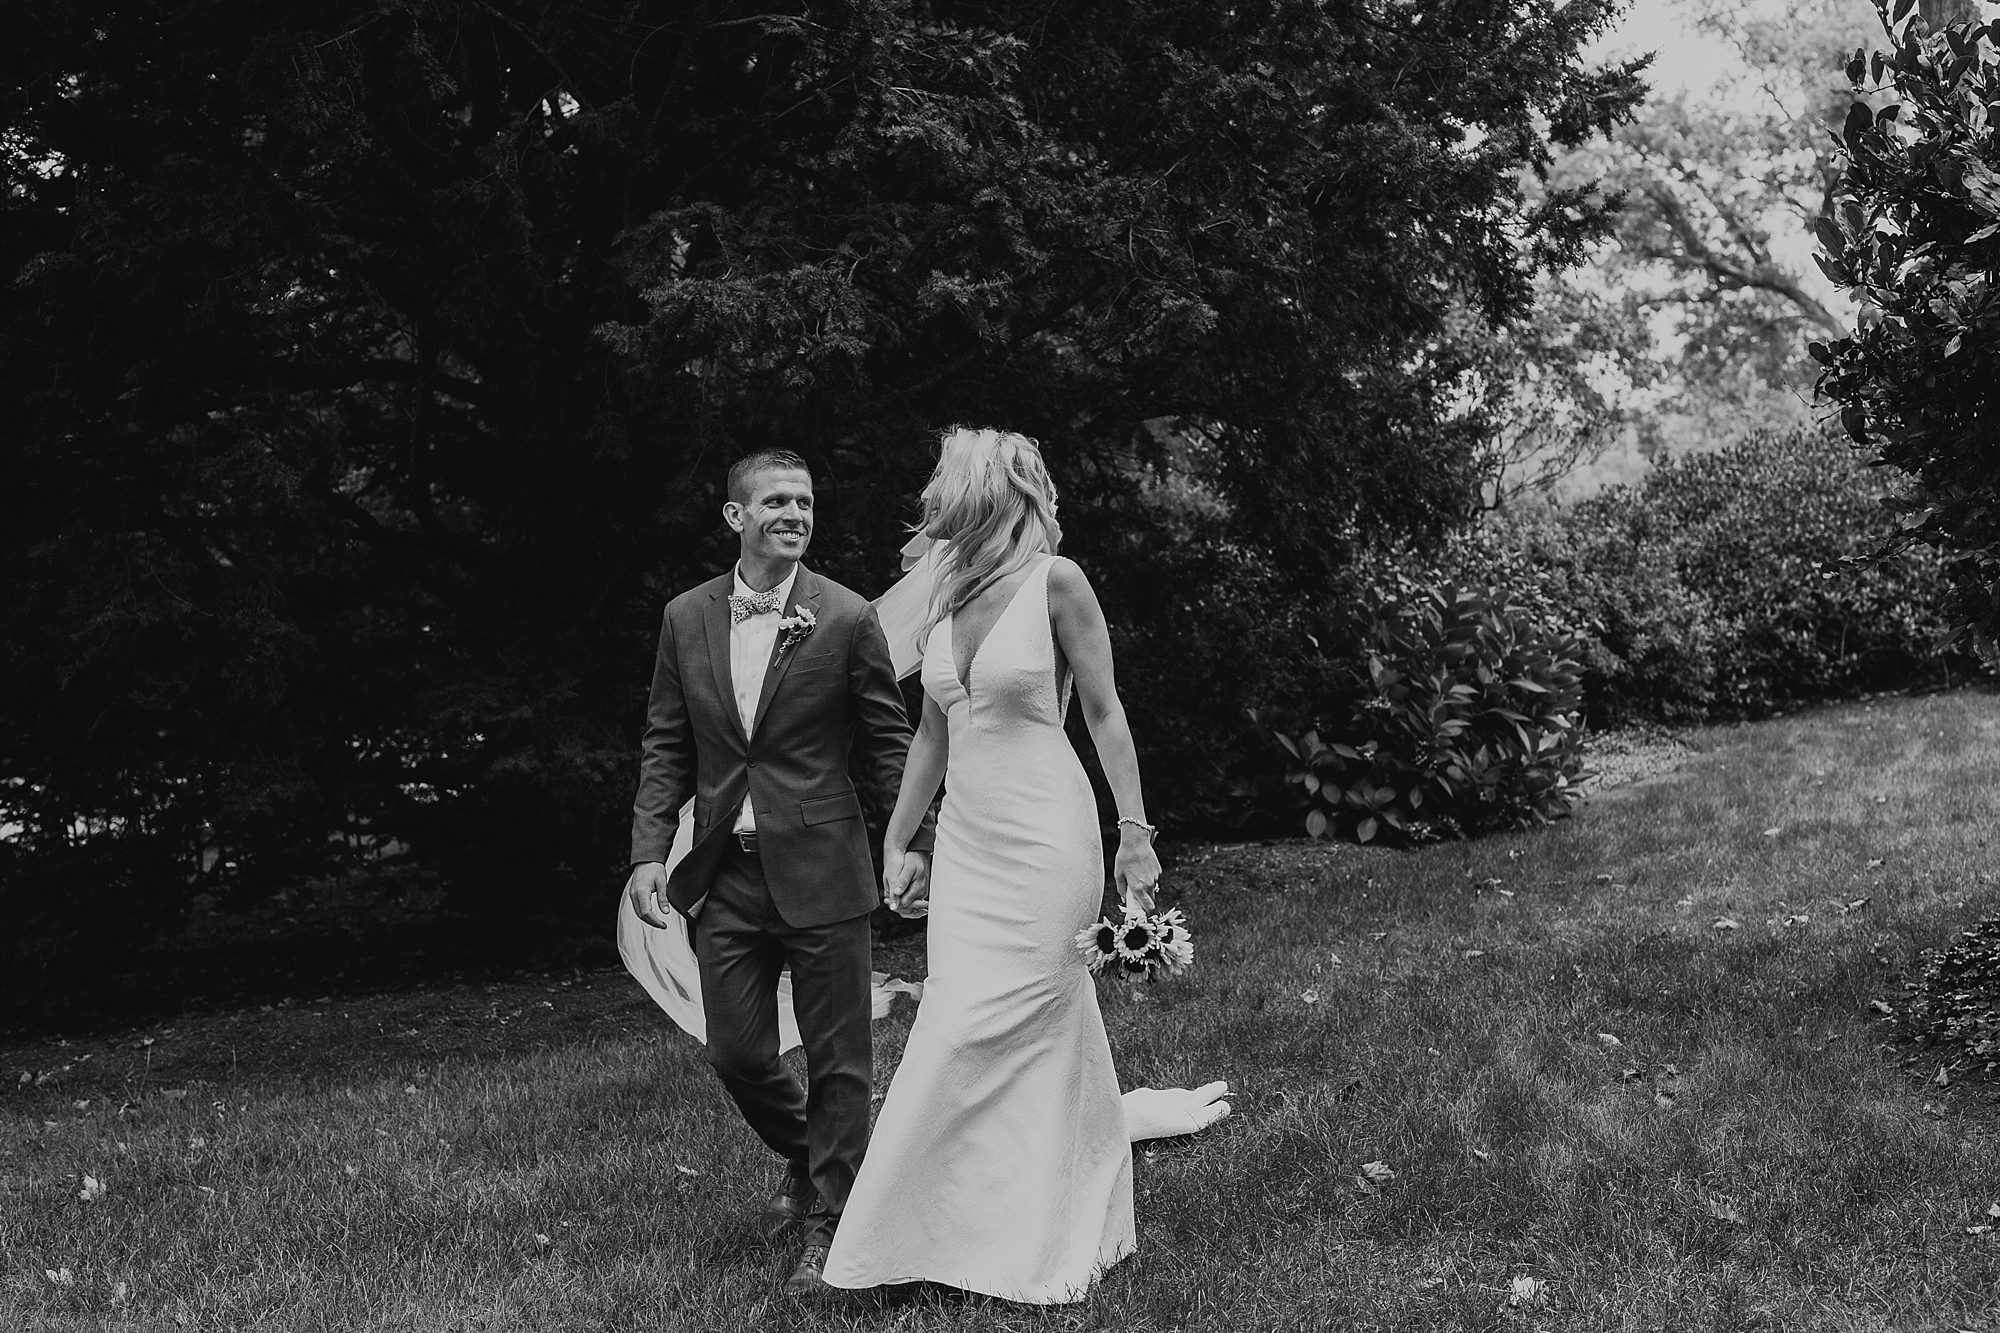 Druemore_Joe_Mac_Creative_Philadelphila_Wedding_Photography_drumore_estate_pequea_Best_lancaster_wedding_venues_0046.jpg